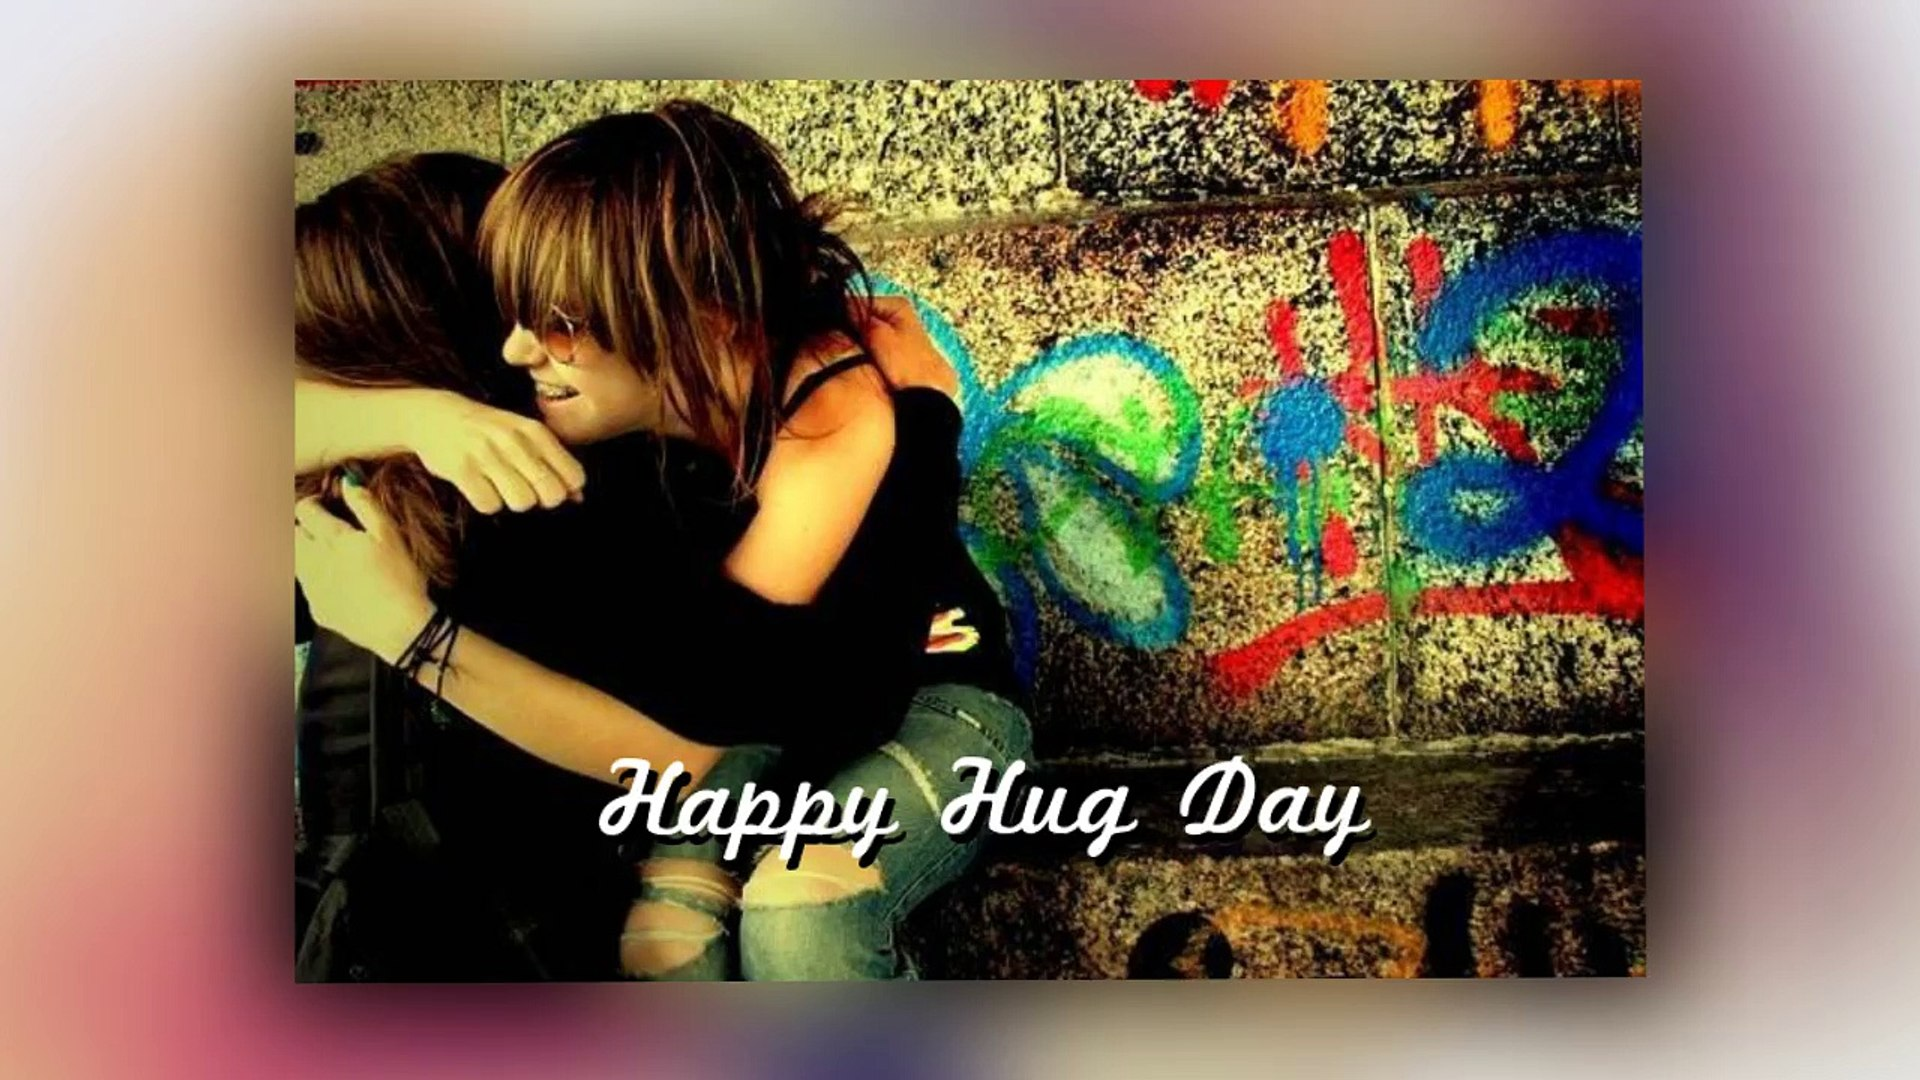 Happy Hug Day Wallpaper For Whatsapp Facebook Pinterest - Hug Day With Rose , HD Wallpaper & Backgrounds